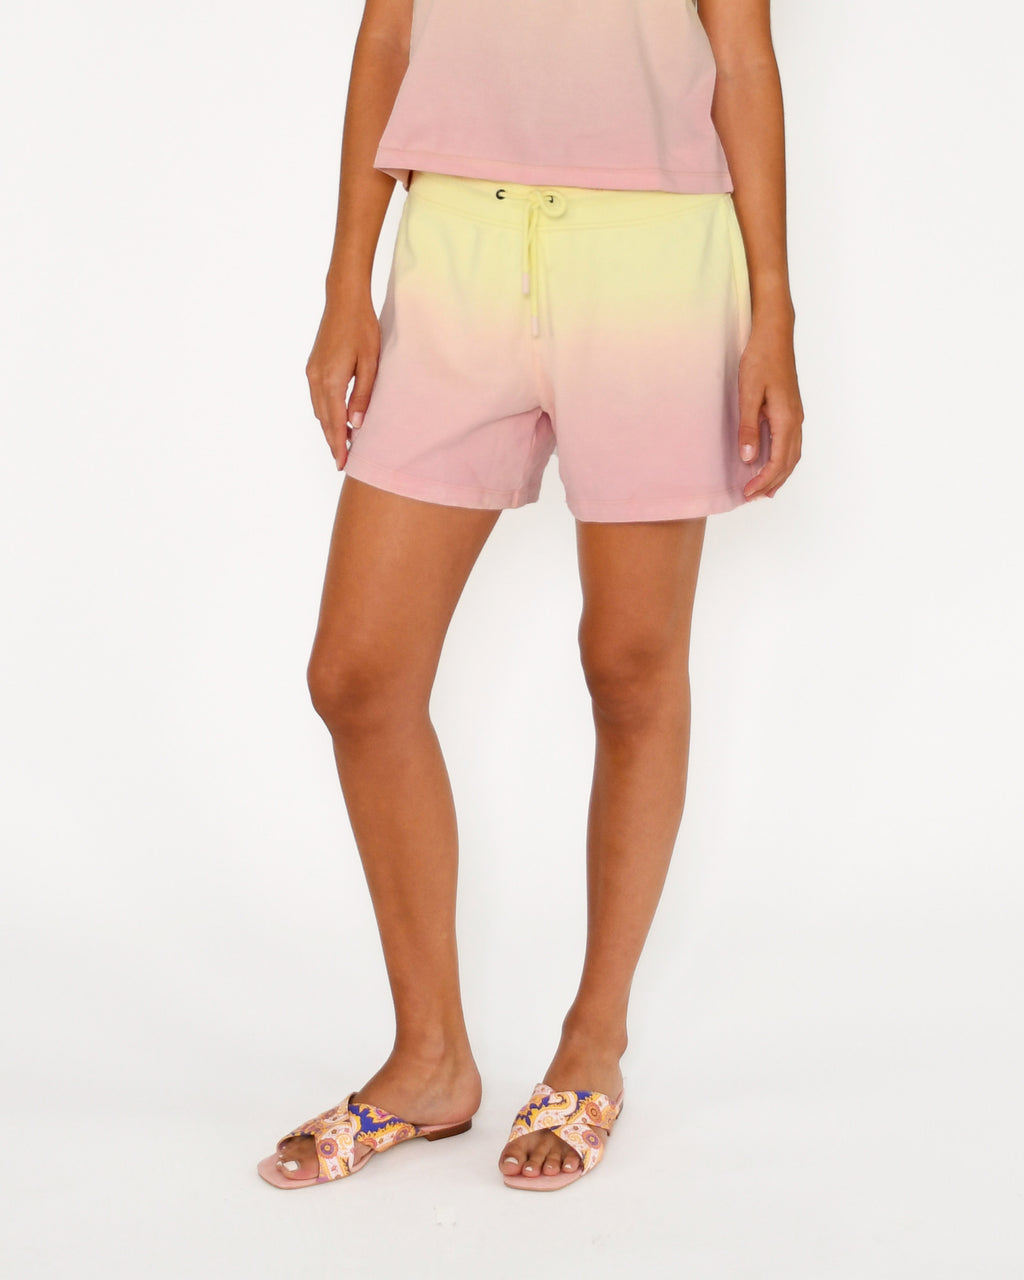 CP18815 - SORBET DIP DYE SHORTS - bottoms - pants - Our sorbet dip dye shorts hit mid thigh and feature a classic drawstring waist. Add 1 line break Stylist Tip: Pair with the matching t-shirt for warm spring days.